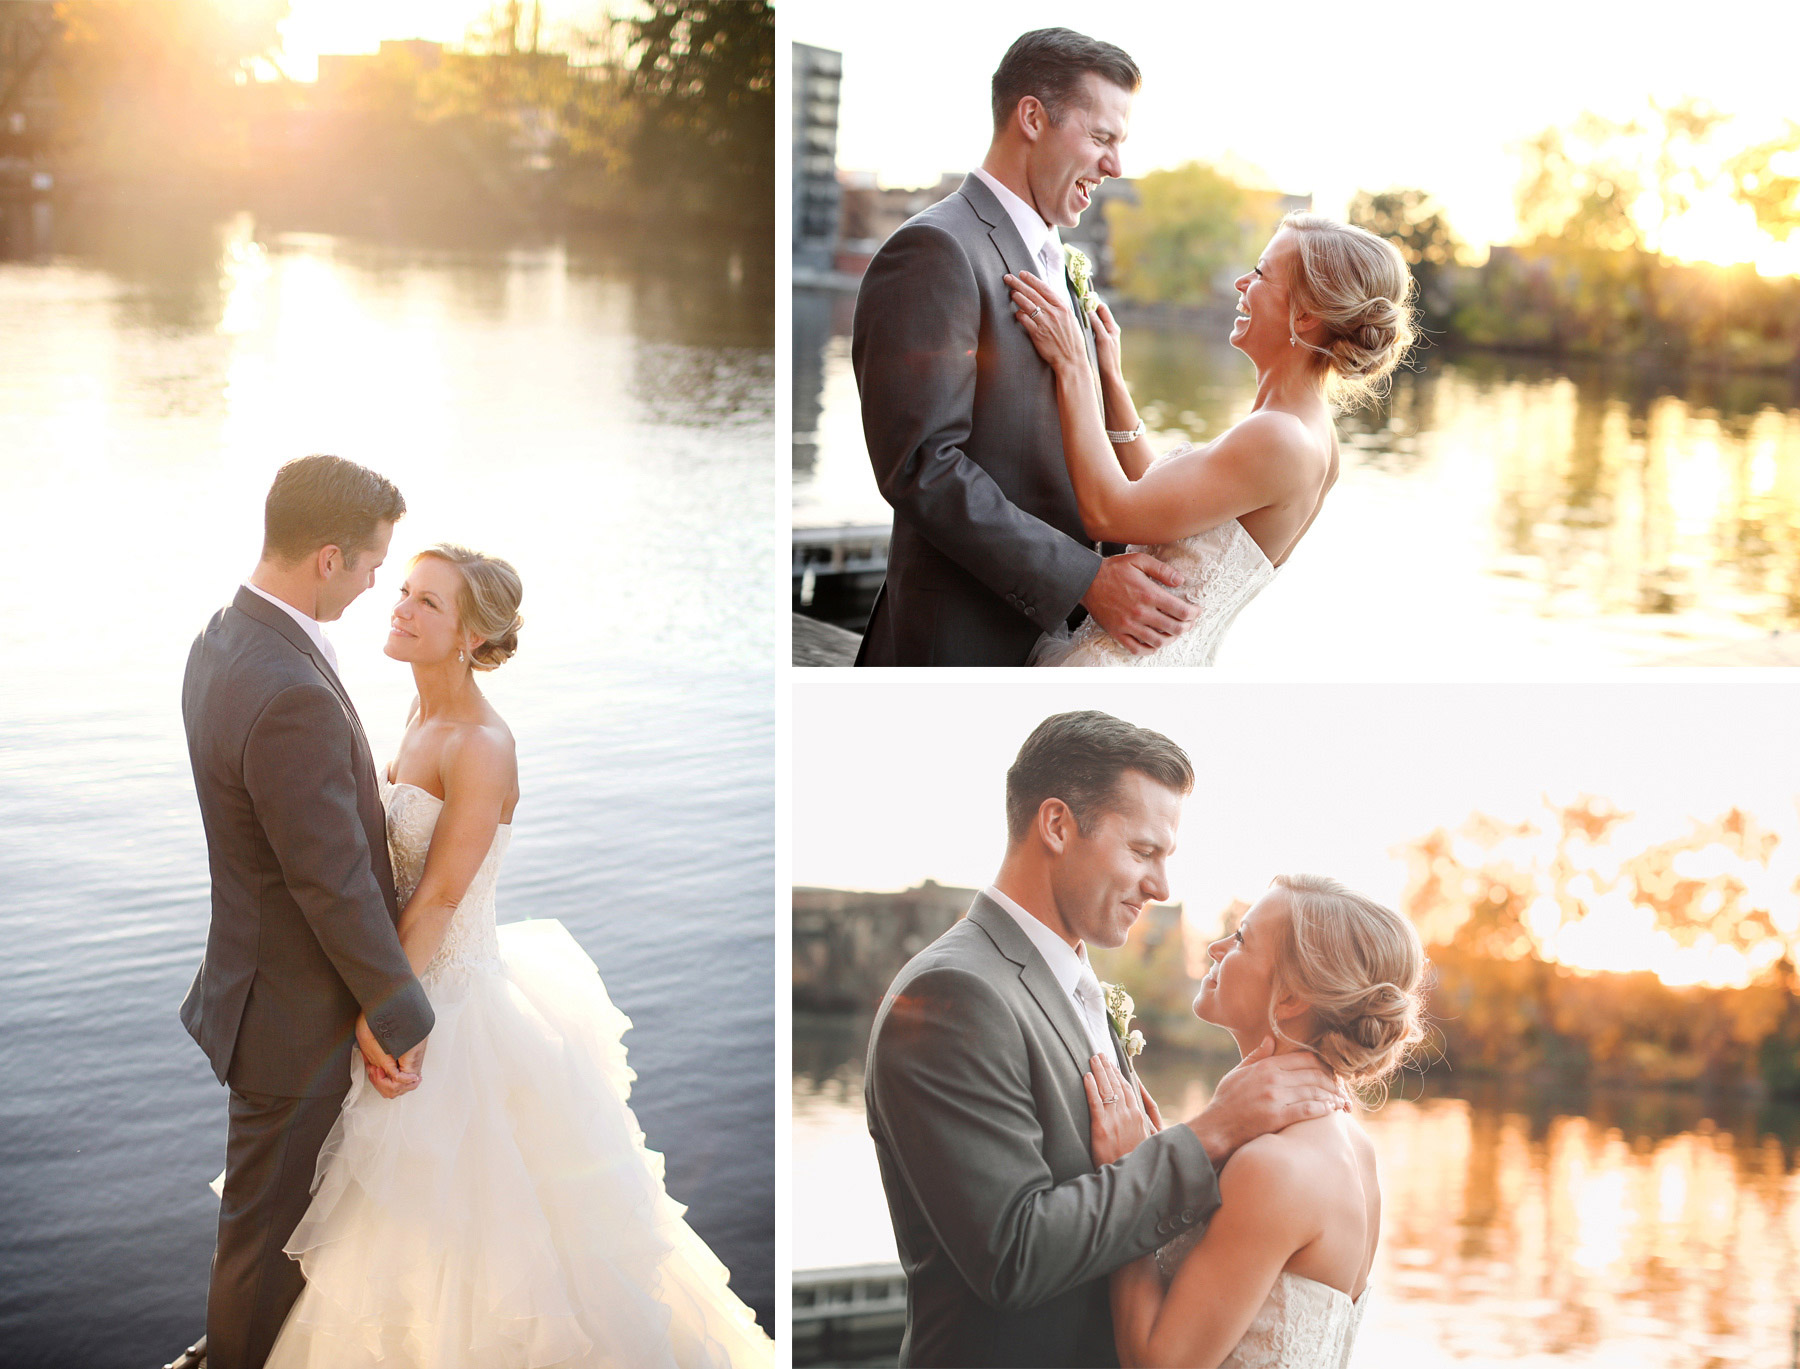 22-Milwaukee-Wisconsin-Wedding-Photographer-by-Andrew-Vick-Photography-Fall-Autumn-Destination-Bride-Groom-Downtown-River-Laughter-Embrace-Sunset-Sunflare-Vintage-Tina-and-Kevin.jpg